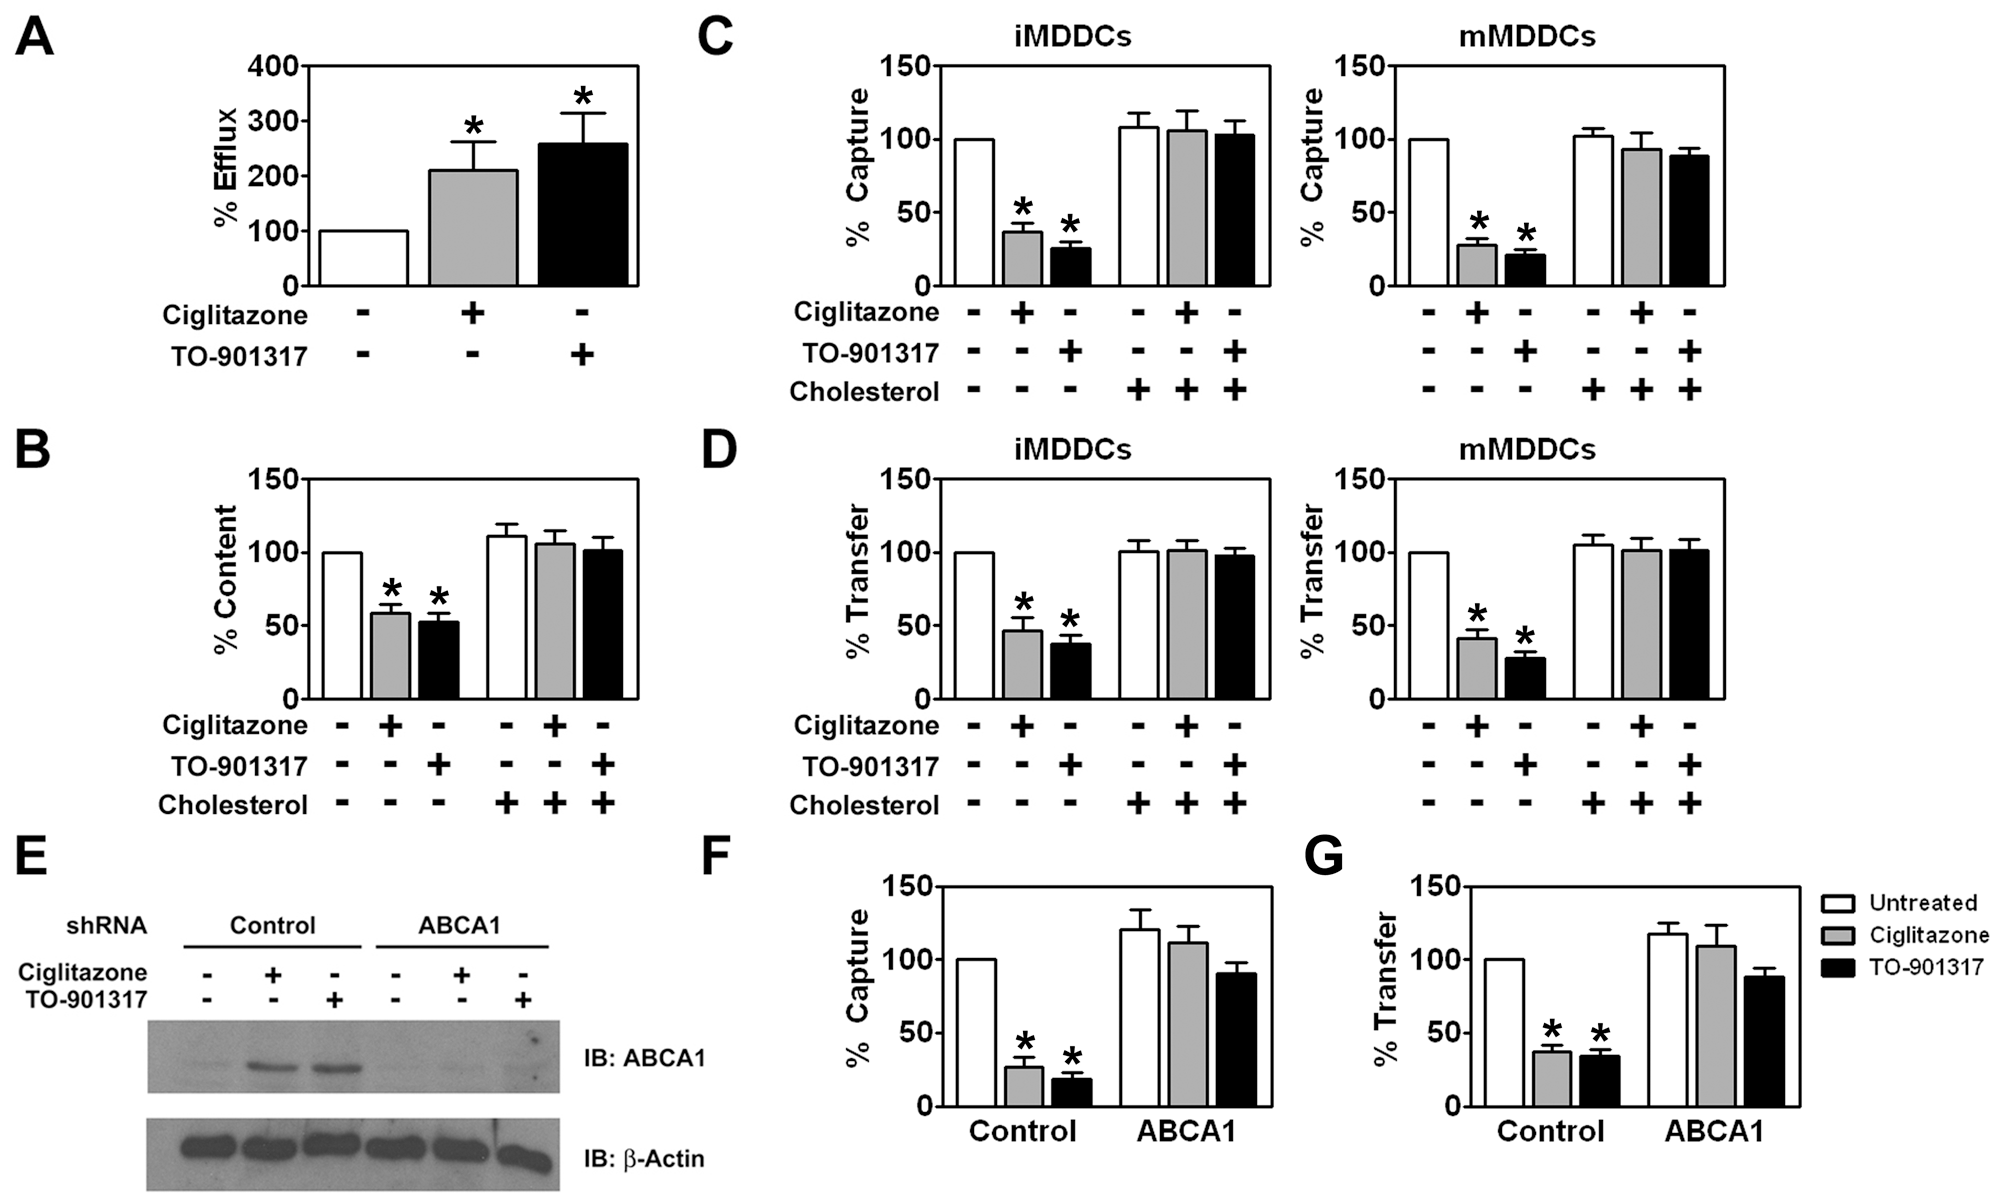 PPARγ and LXR signaling inhibit HIV-1 capture and transfer by MDDCs via ABCA1-dependent cholesterol efflux.